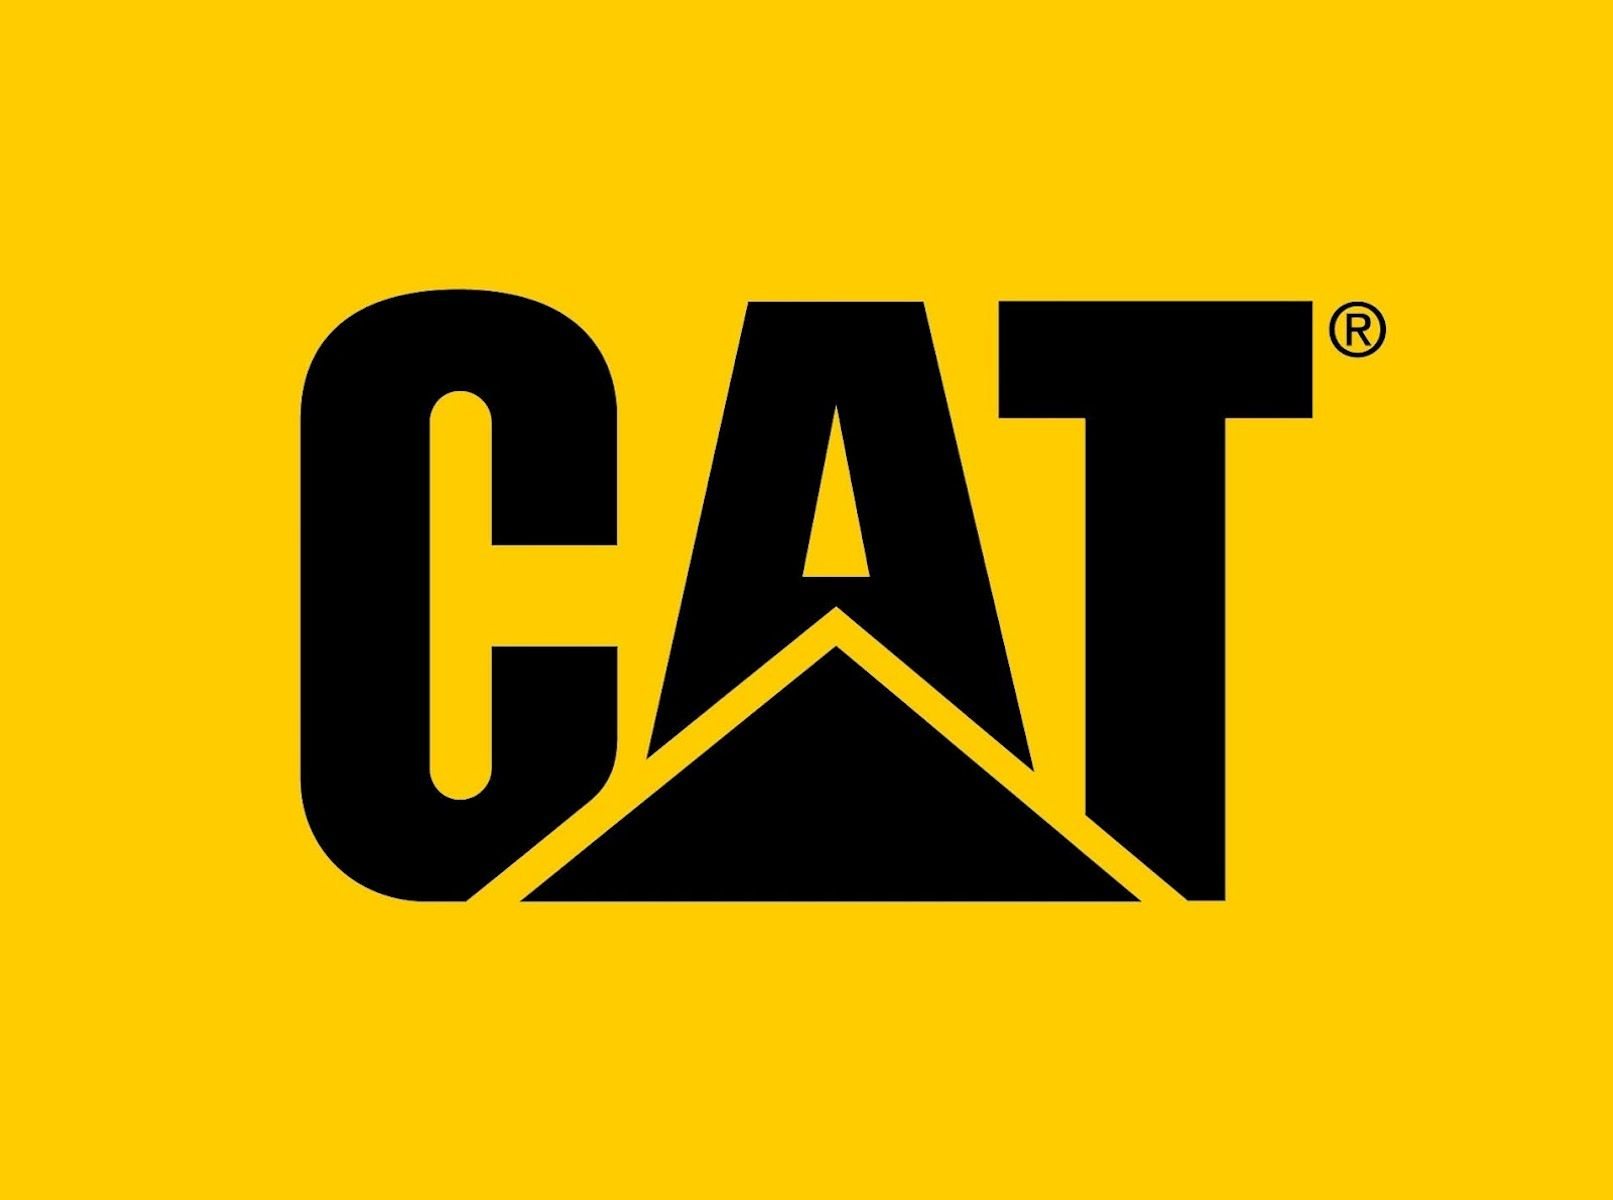 Caterpillar Logo Hd Wallpaper Logotipo De Gato Ideas Para